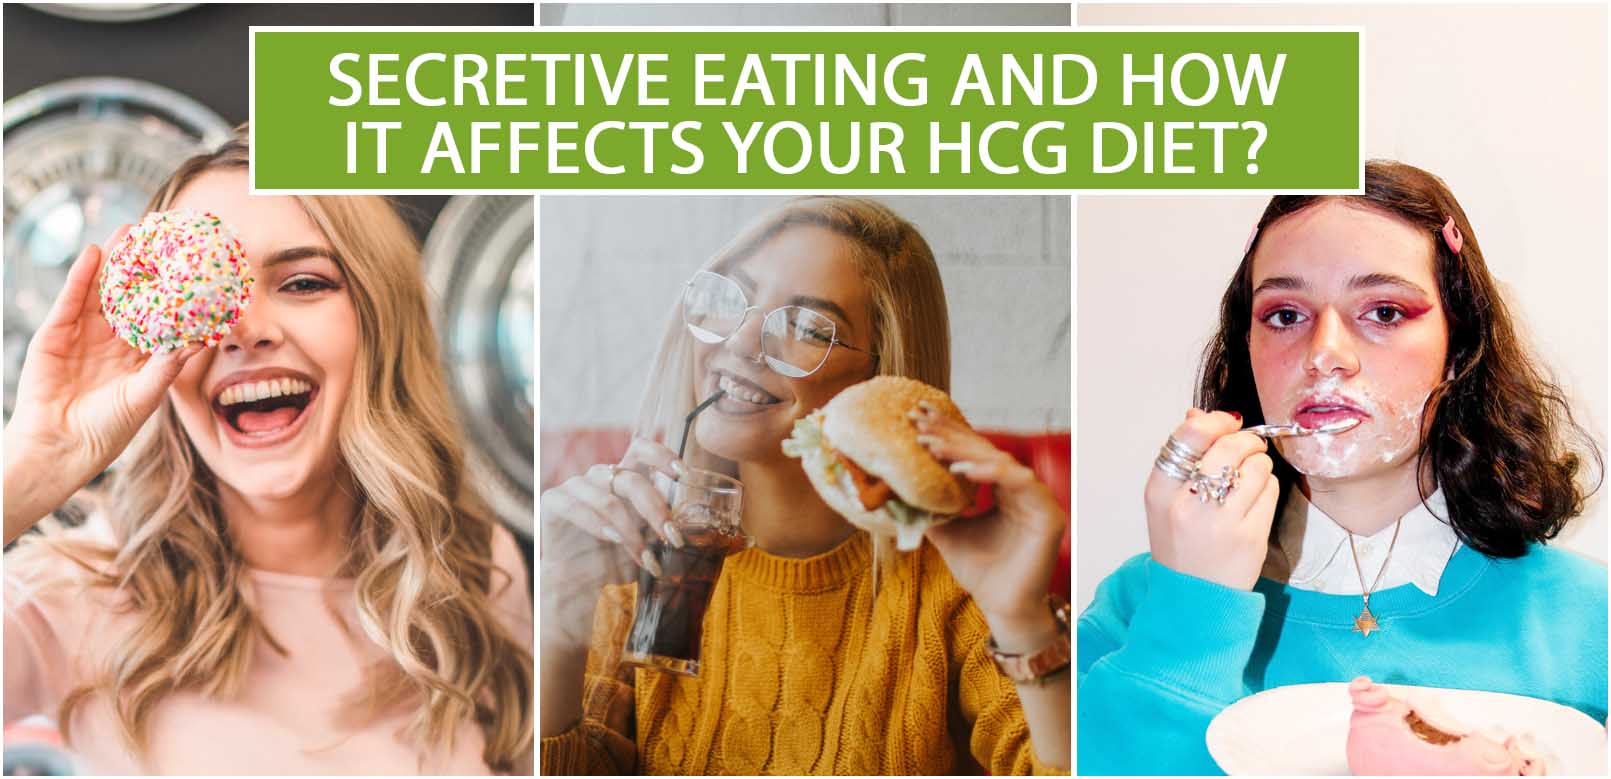 SECRETIVE EATING AND HOW IT AFFECTS YOUR HCG DIET